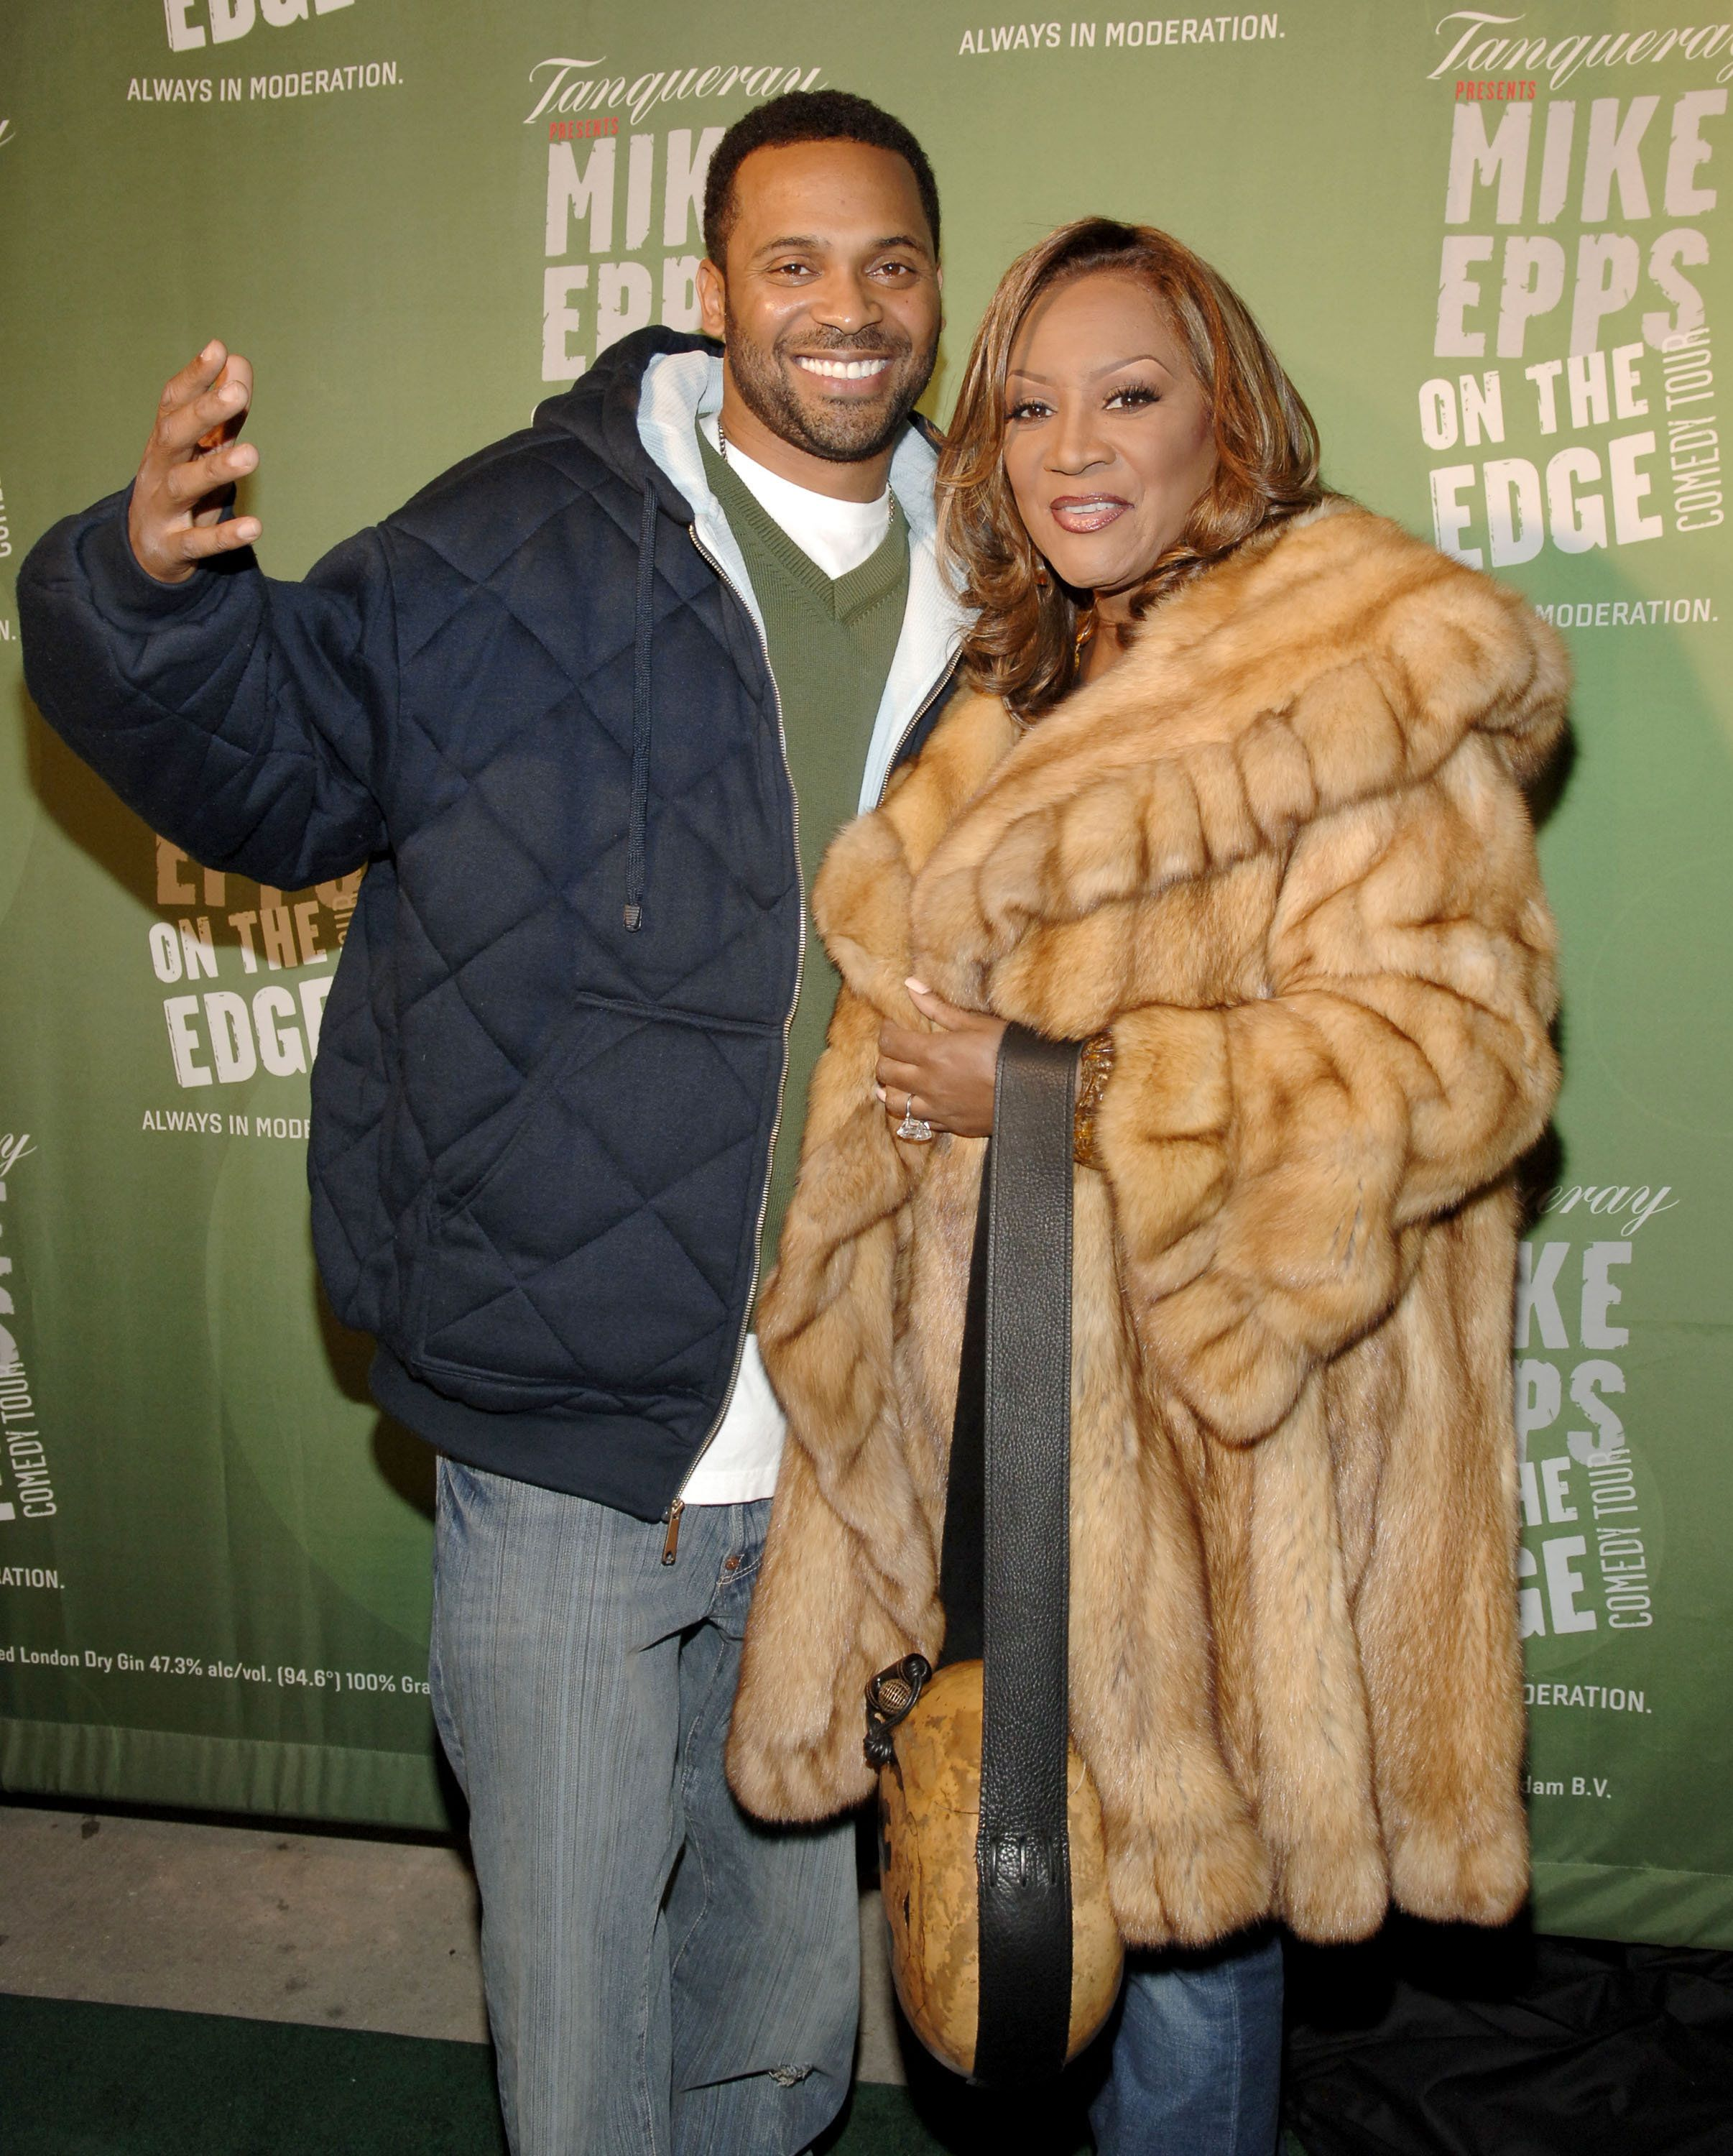 Mike Epps and Patti LaBelle during Tanqueray Presents 'Mike Epps: On the Edge' Comedy Tour Kick-Off Party at The Newspace in New York City, New York, United States. (Photo by Jemal Countess/WireImage)